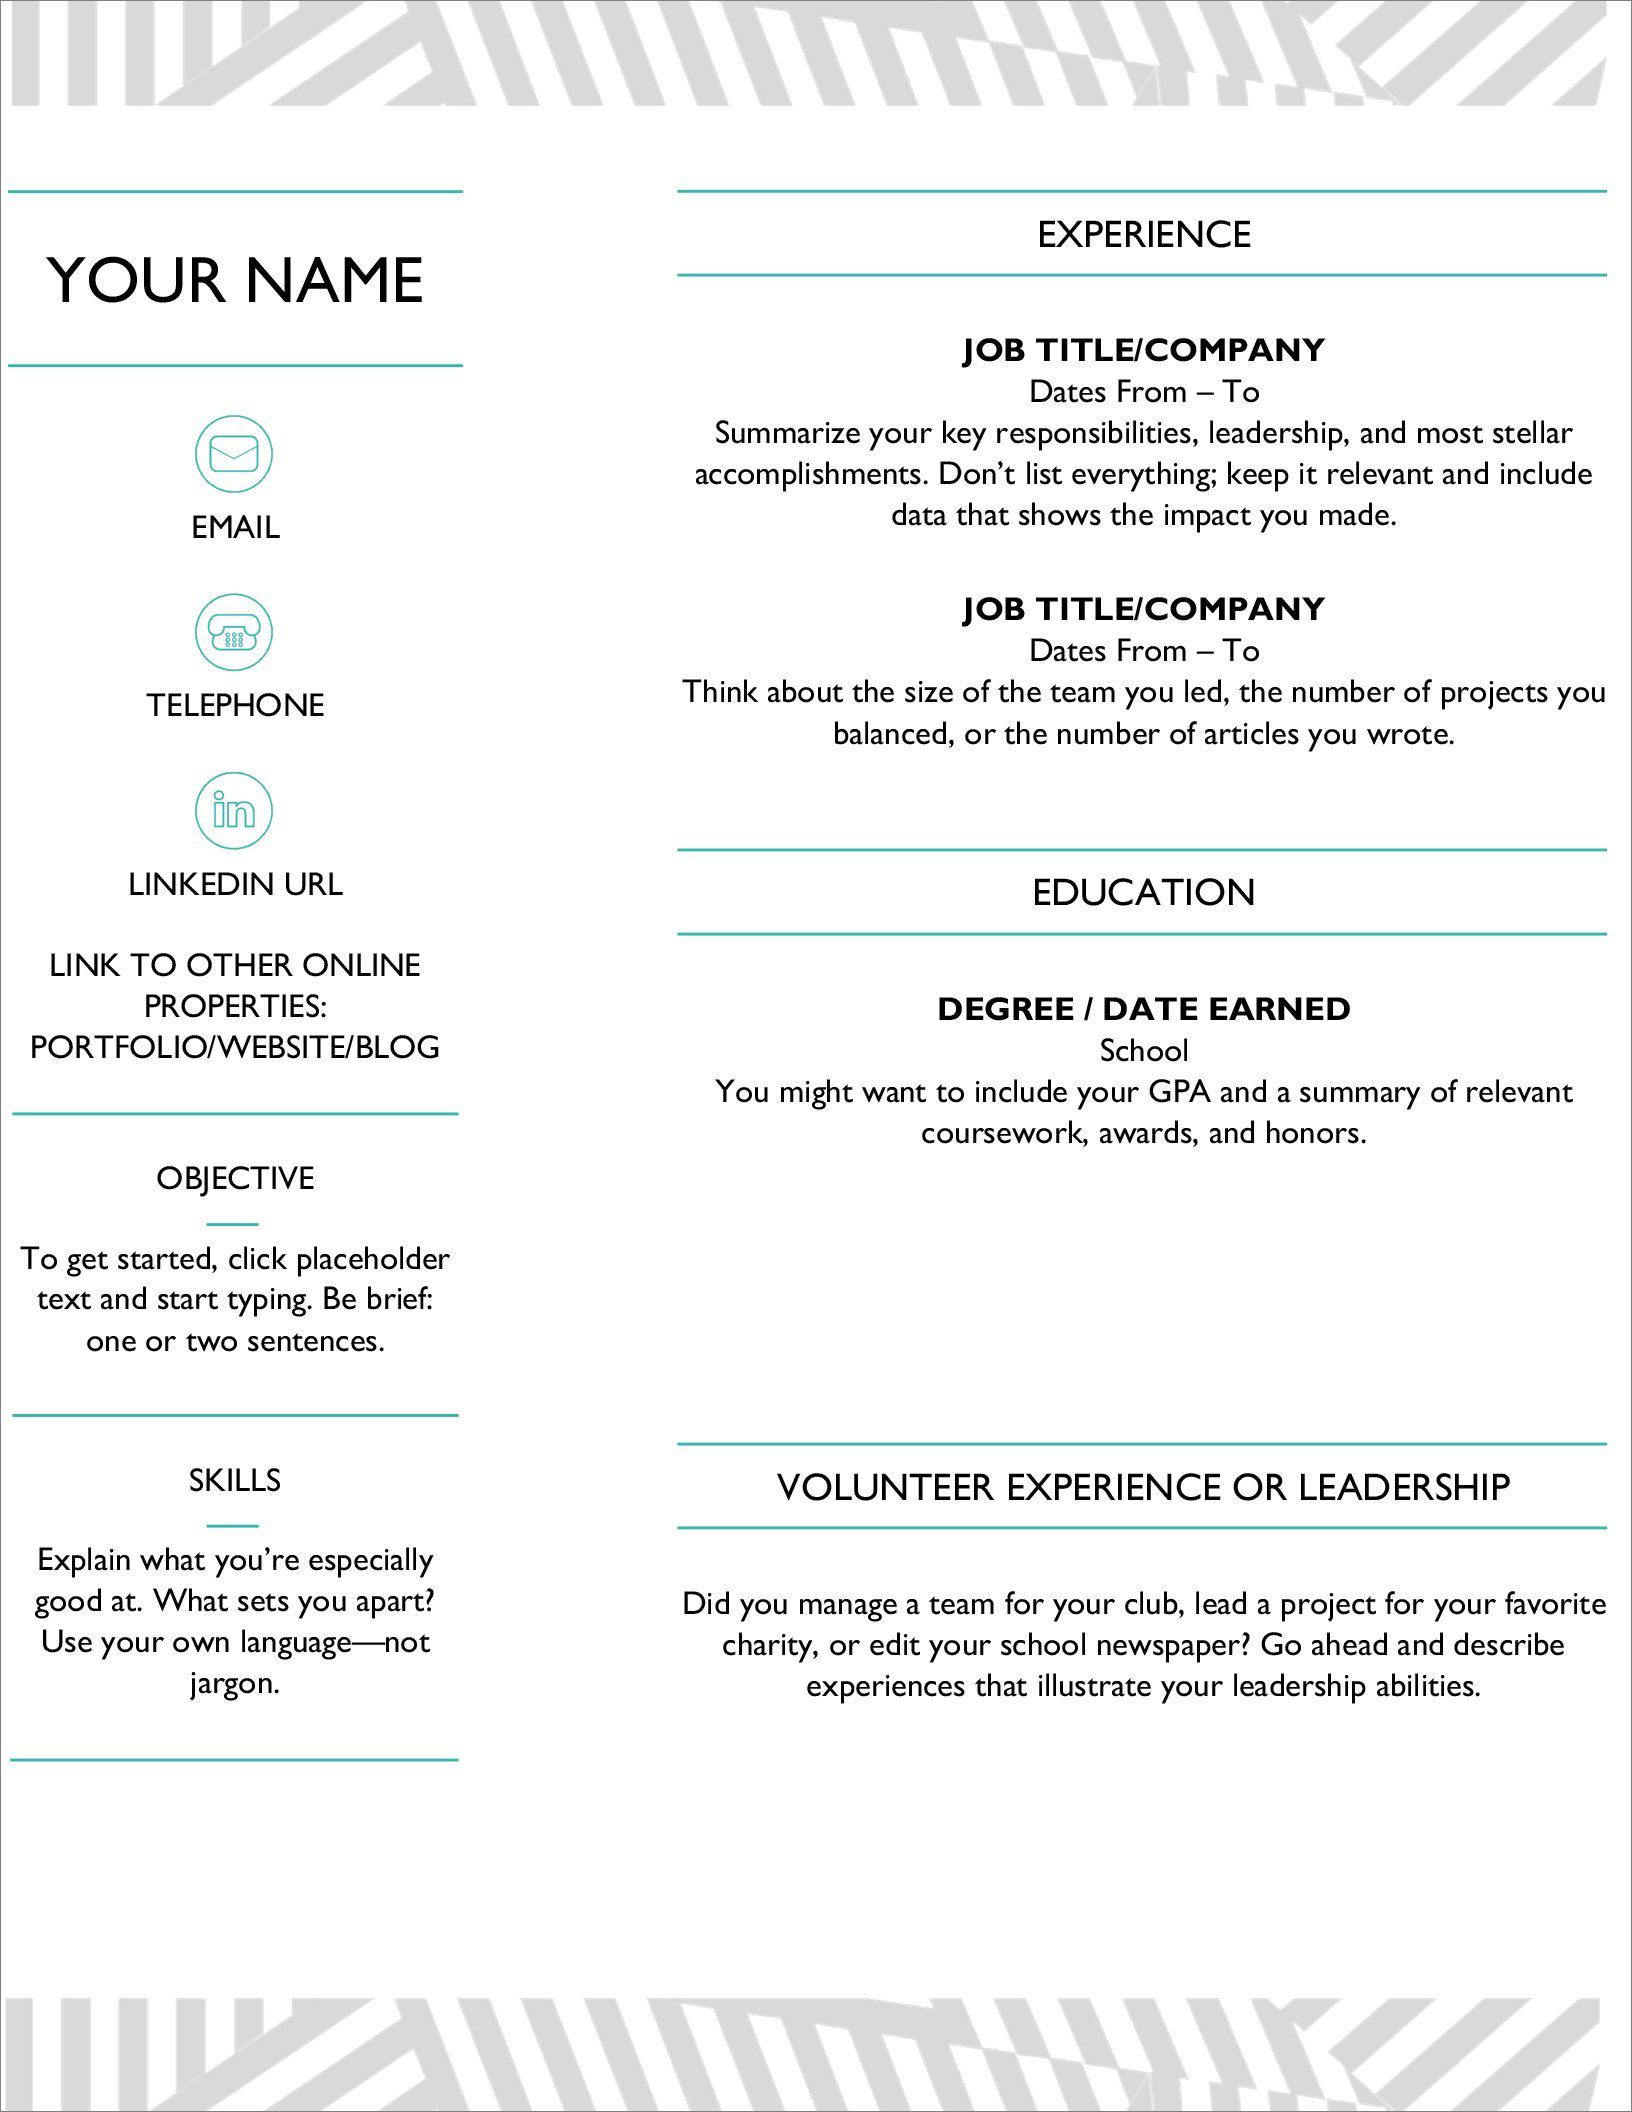 008 Unforgettable Basic Resume Template Word Photo  Free Download 2020Full